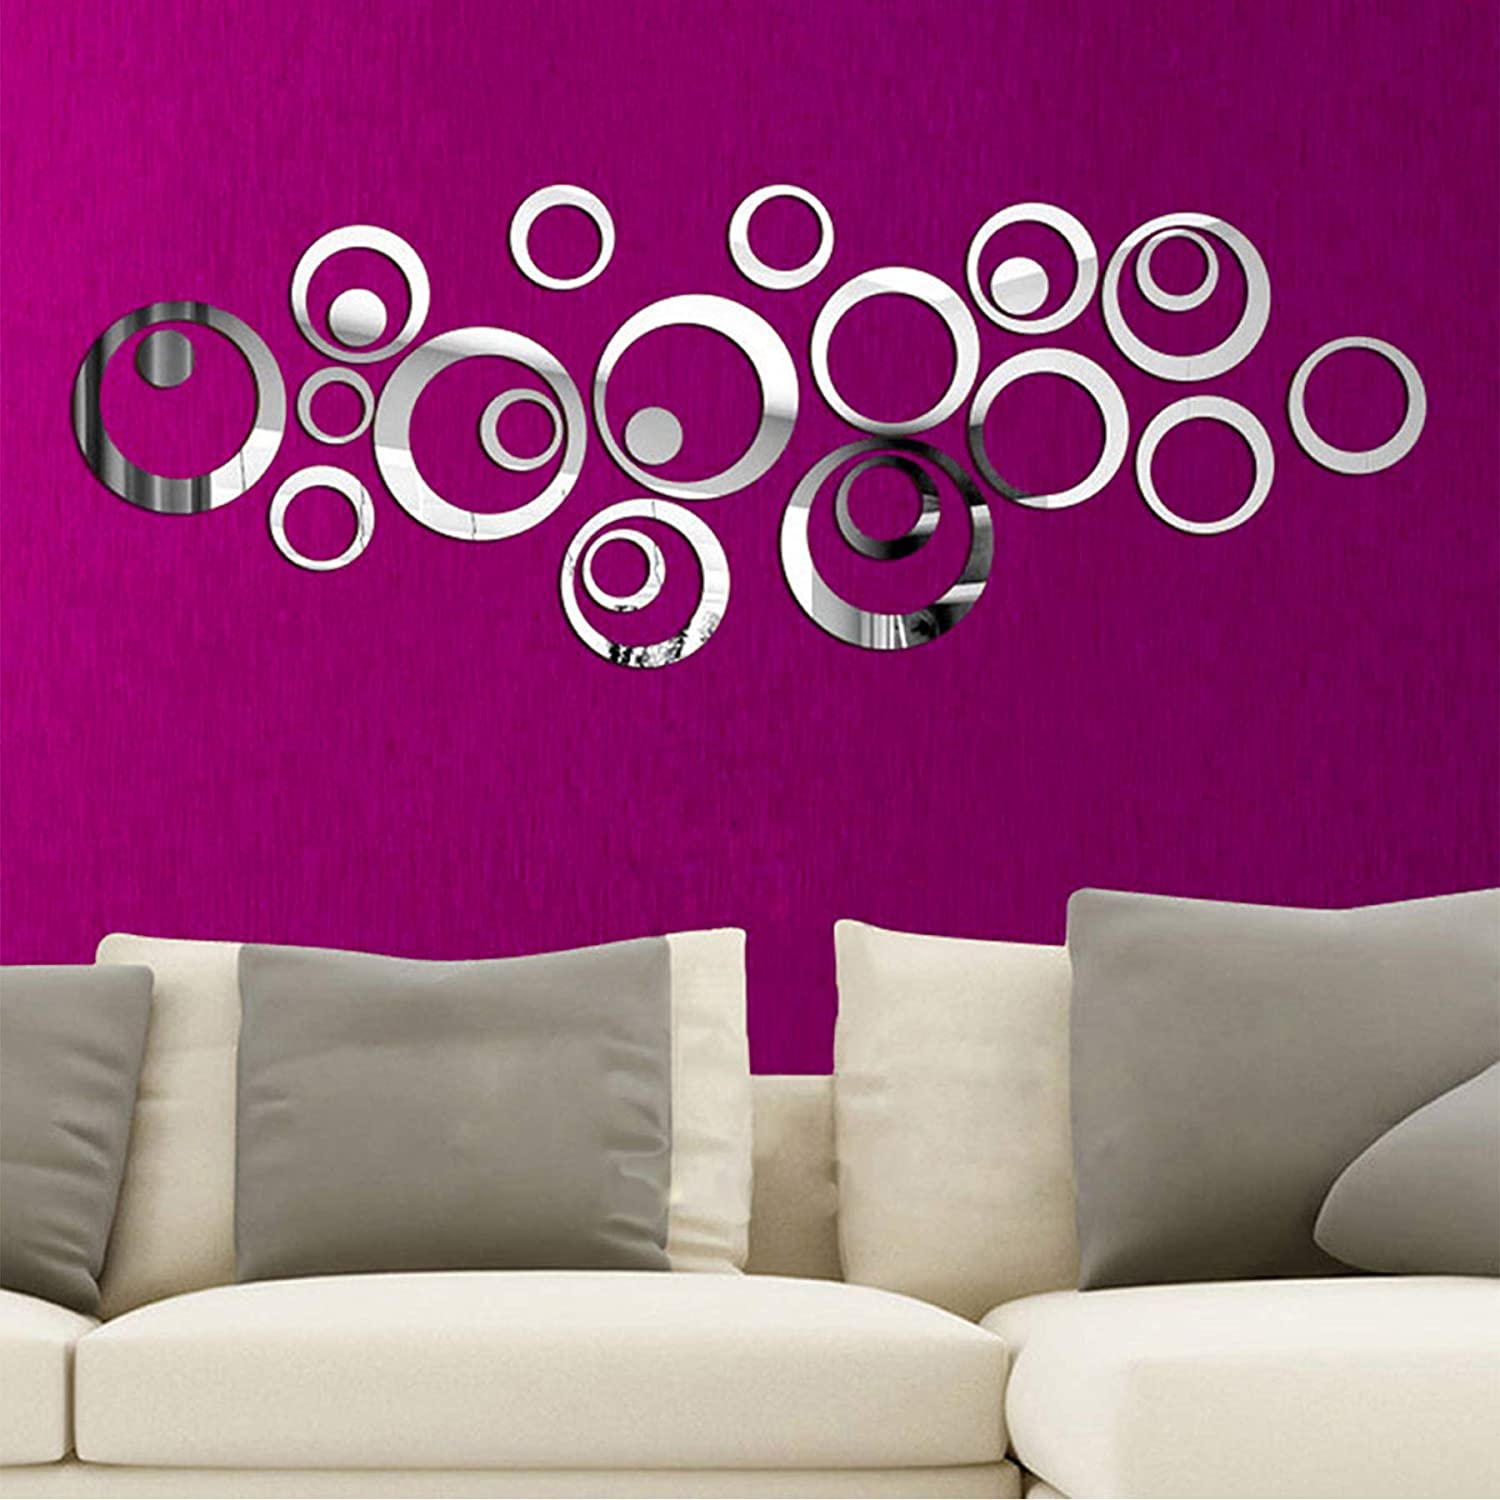 Amazon Com Mirror Wall Stickers Aesthetic Wall Art Decals Decor For Bedroom Bathroom Living Room 3d Acrylic Room Murals Decorations For Women 24 Pieces S1 Kitchen Dining